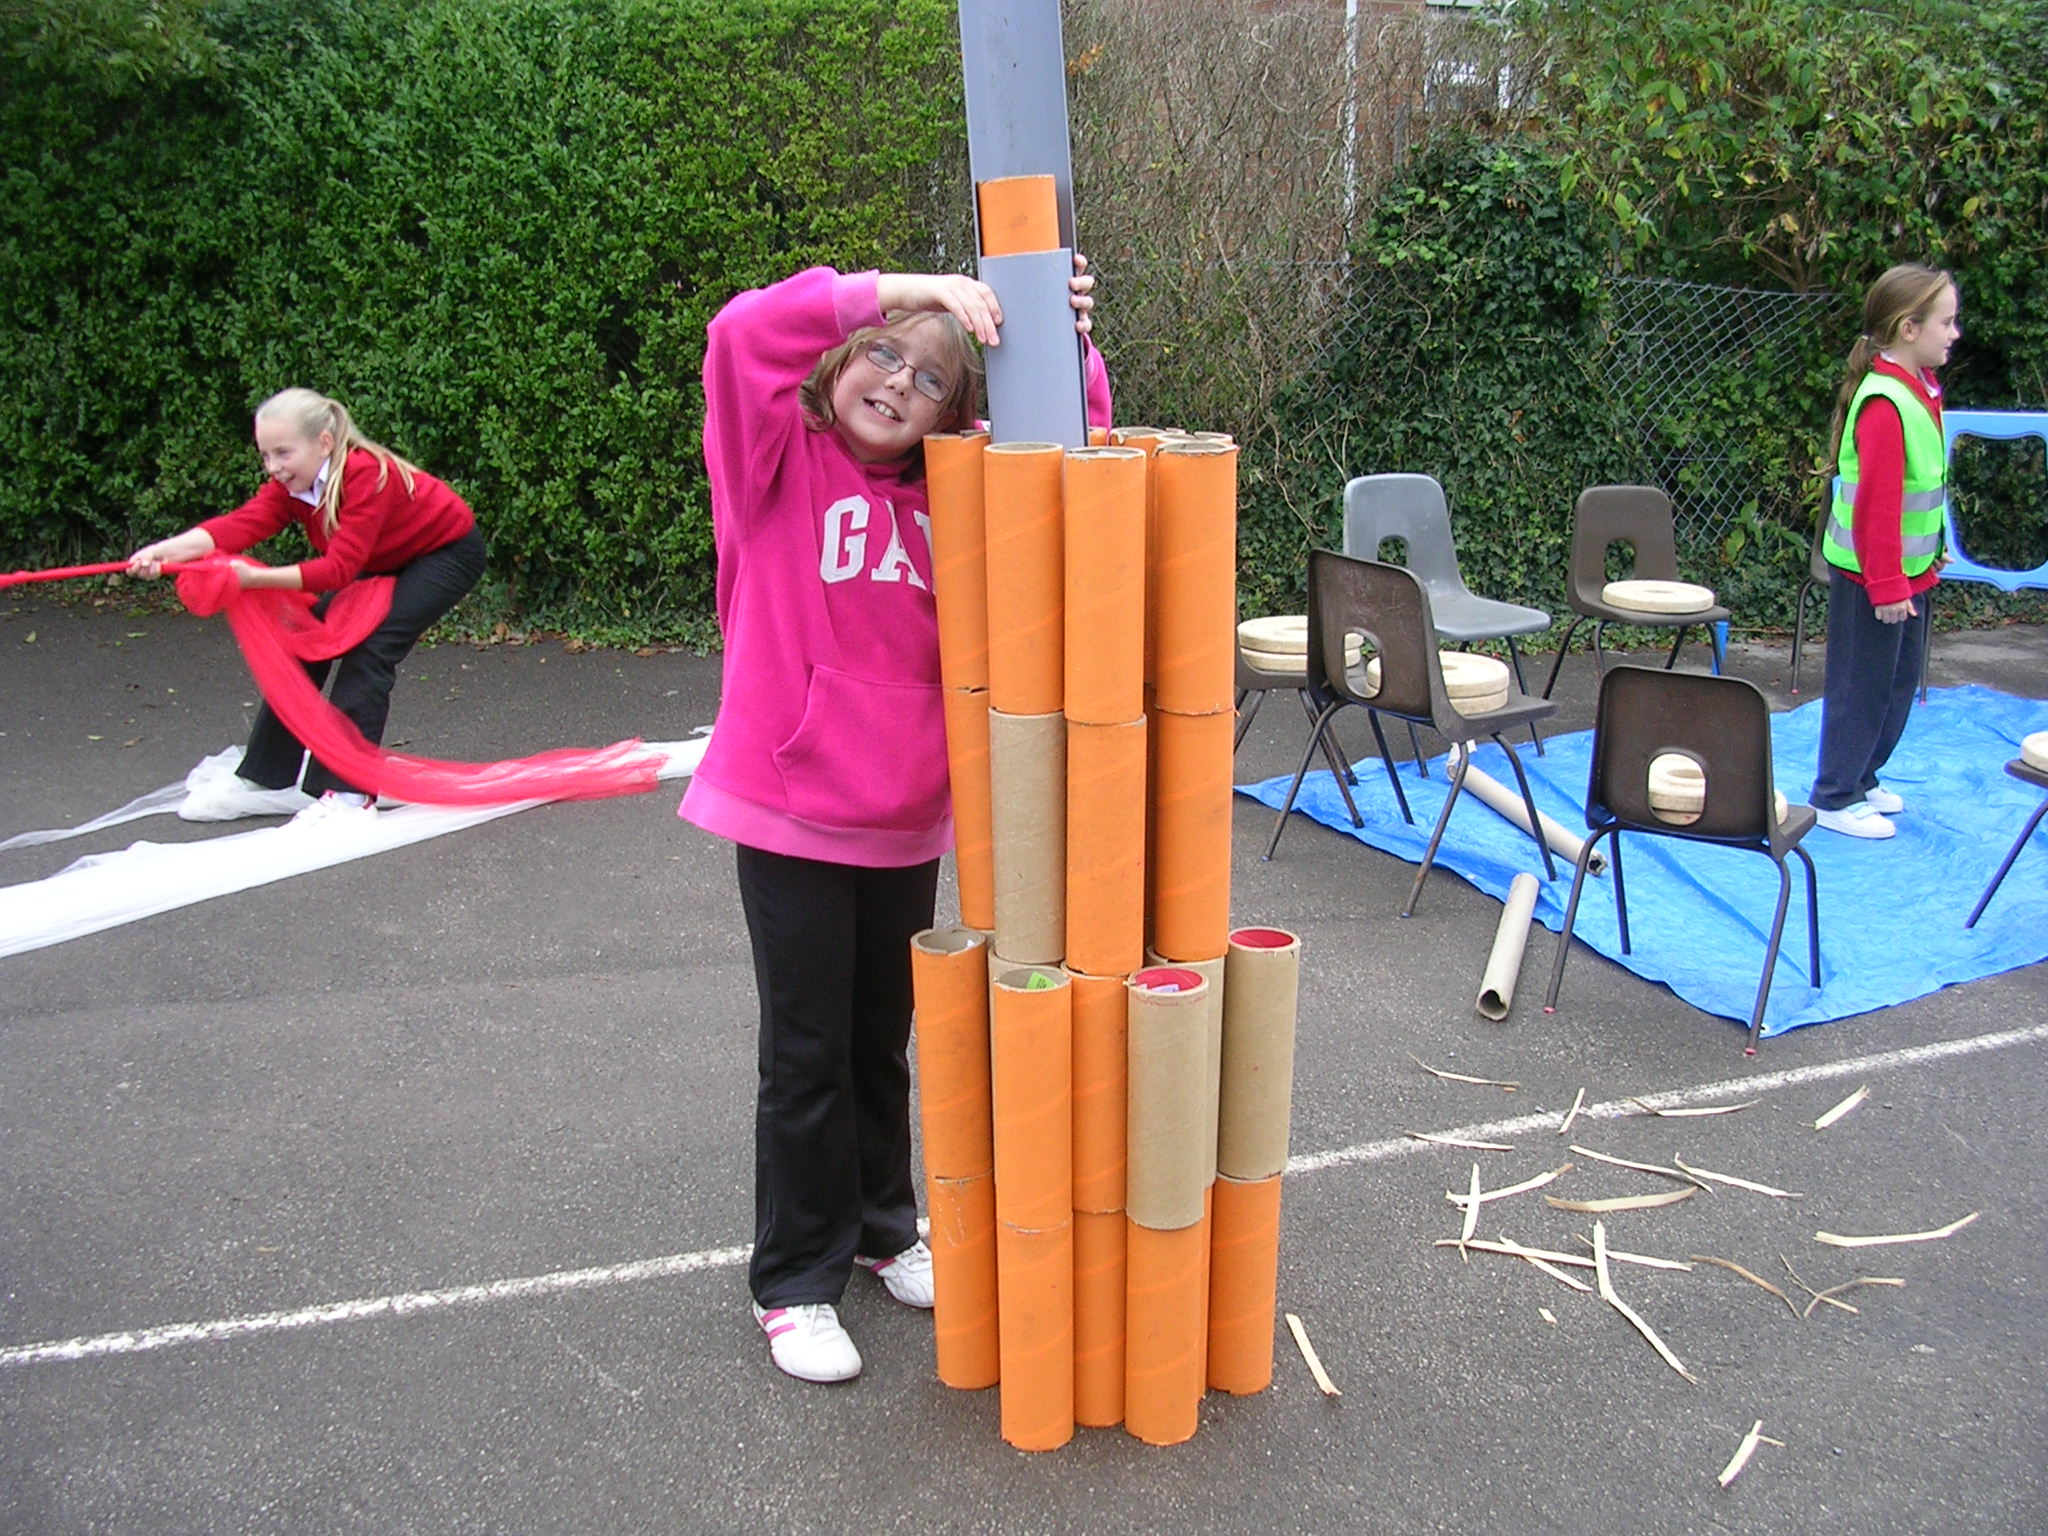 Great for building structures, developing resilience, problem solving and understanding properties of materials.